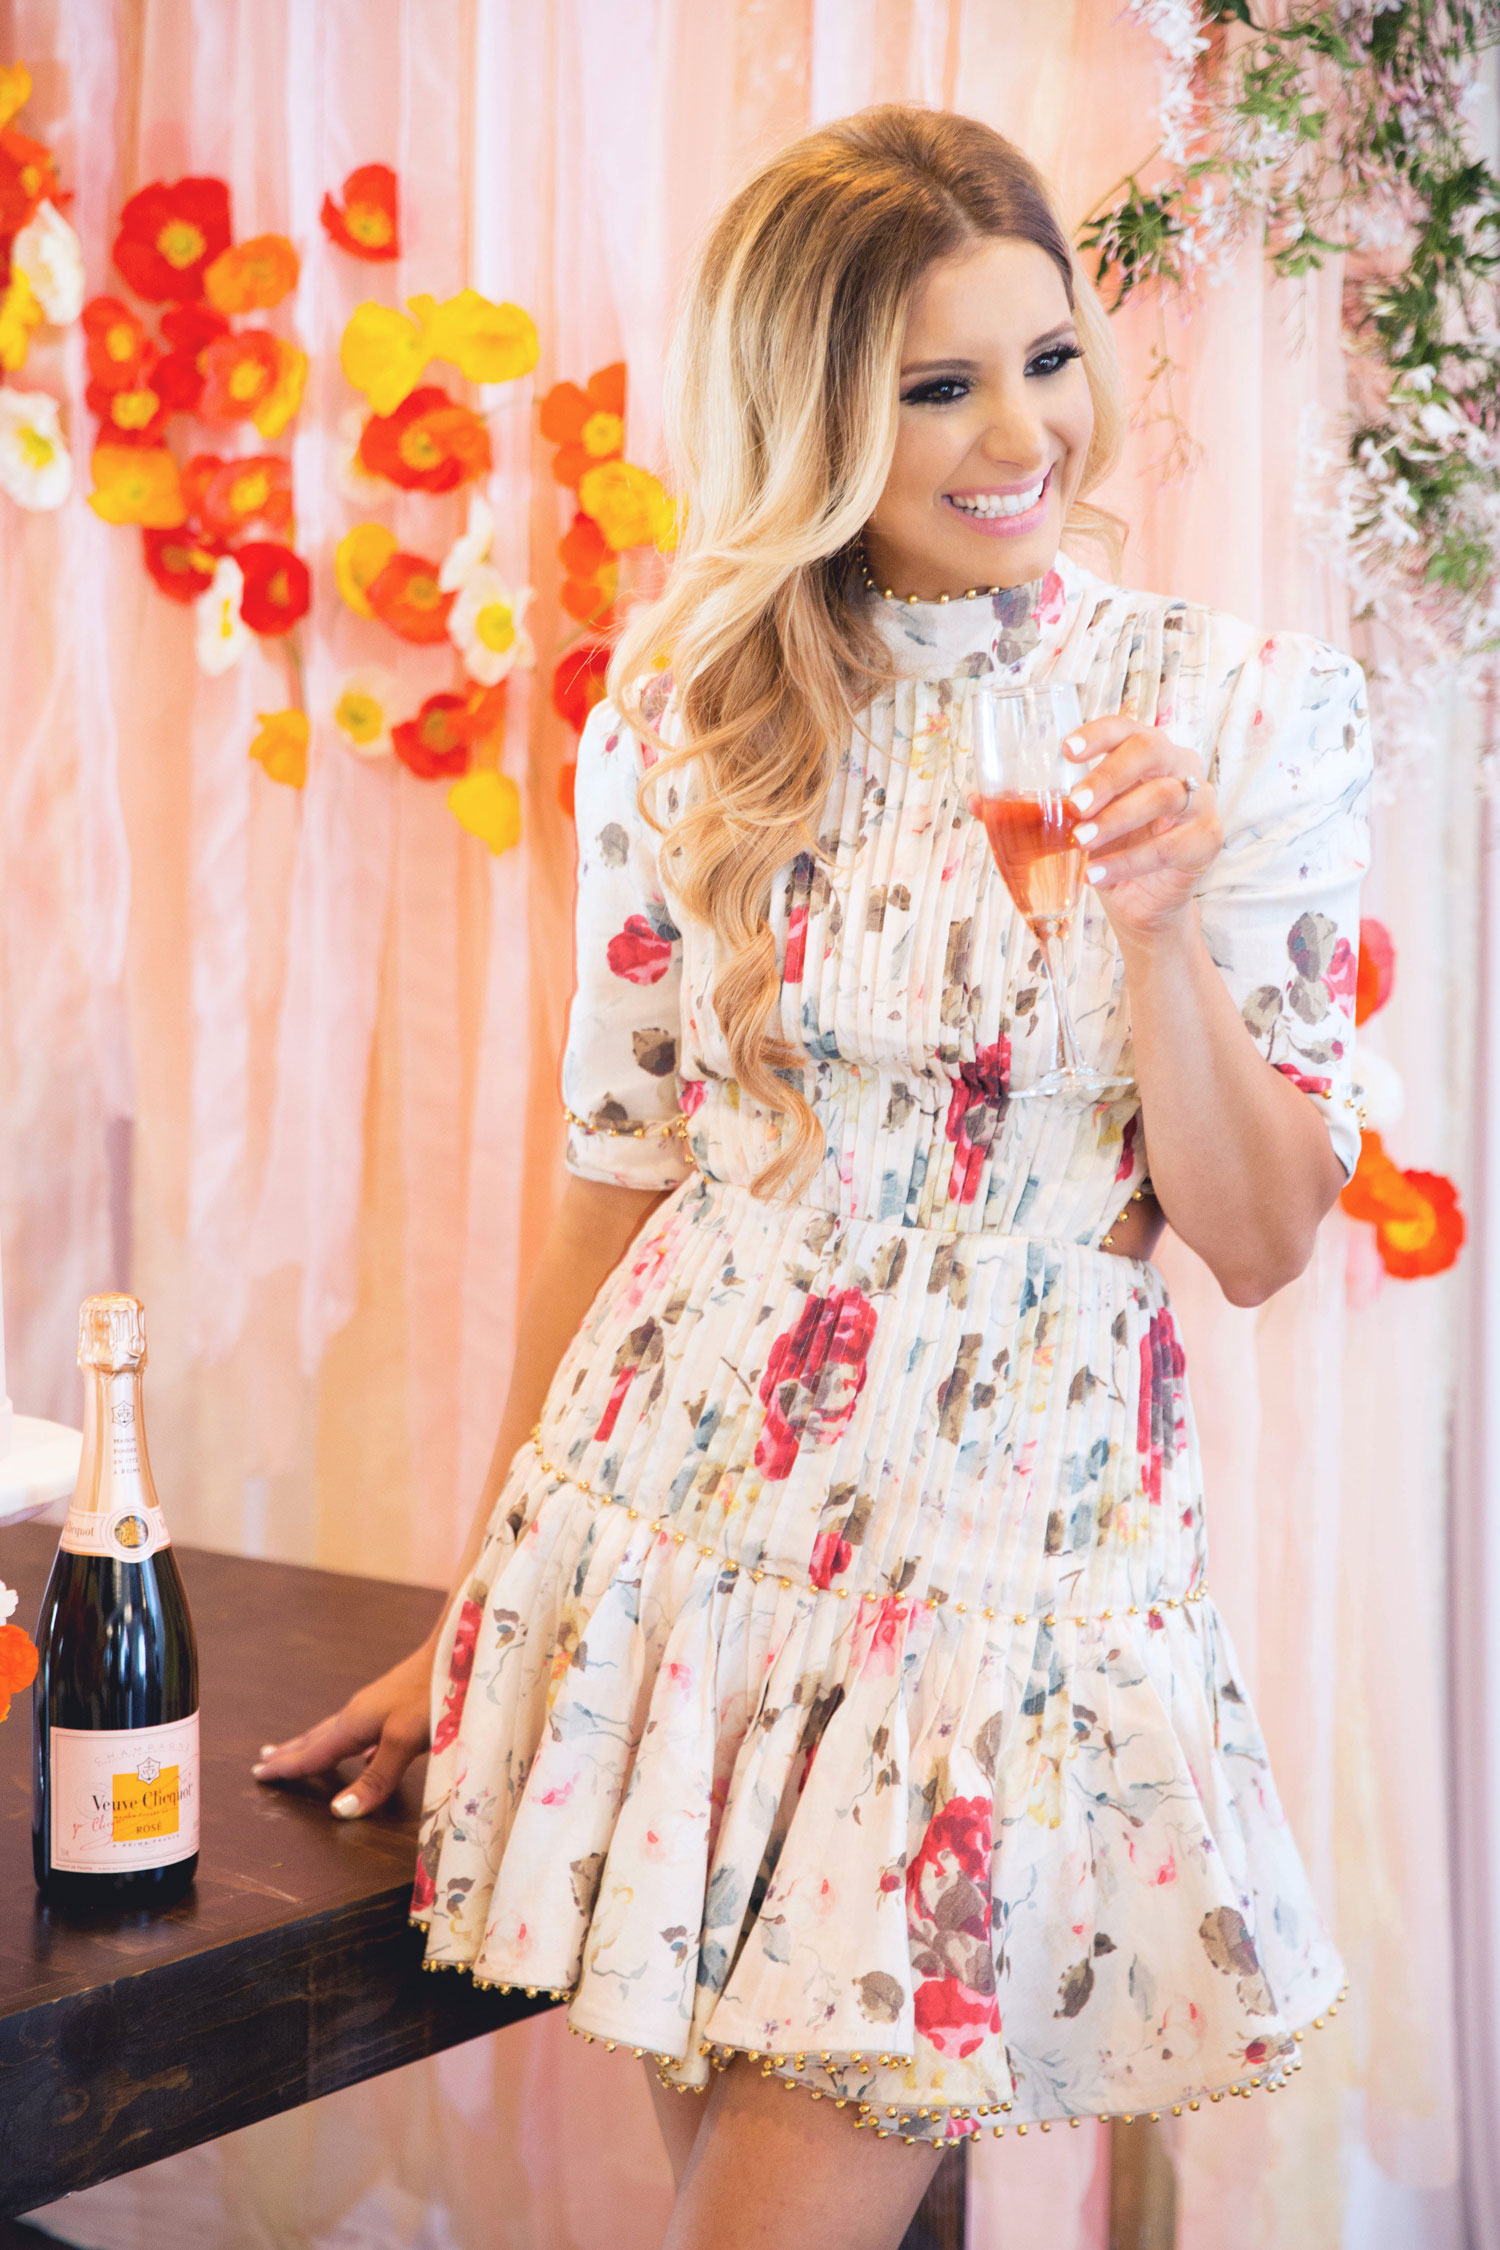 Bridal Shower Outfit Inspiration From Real Brides Inside Weddings